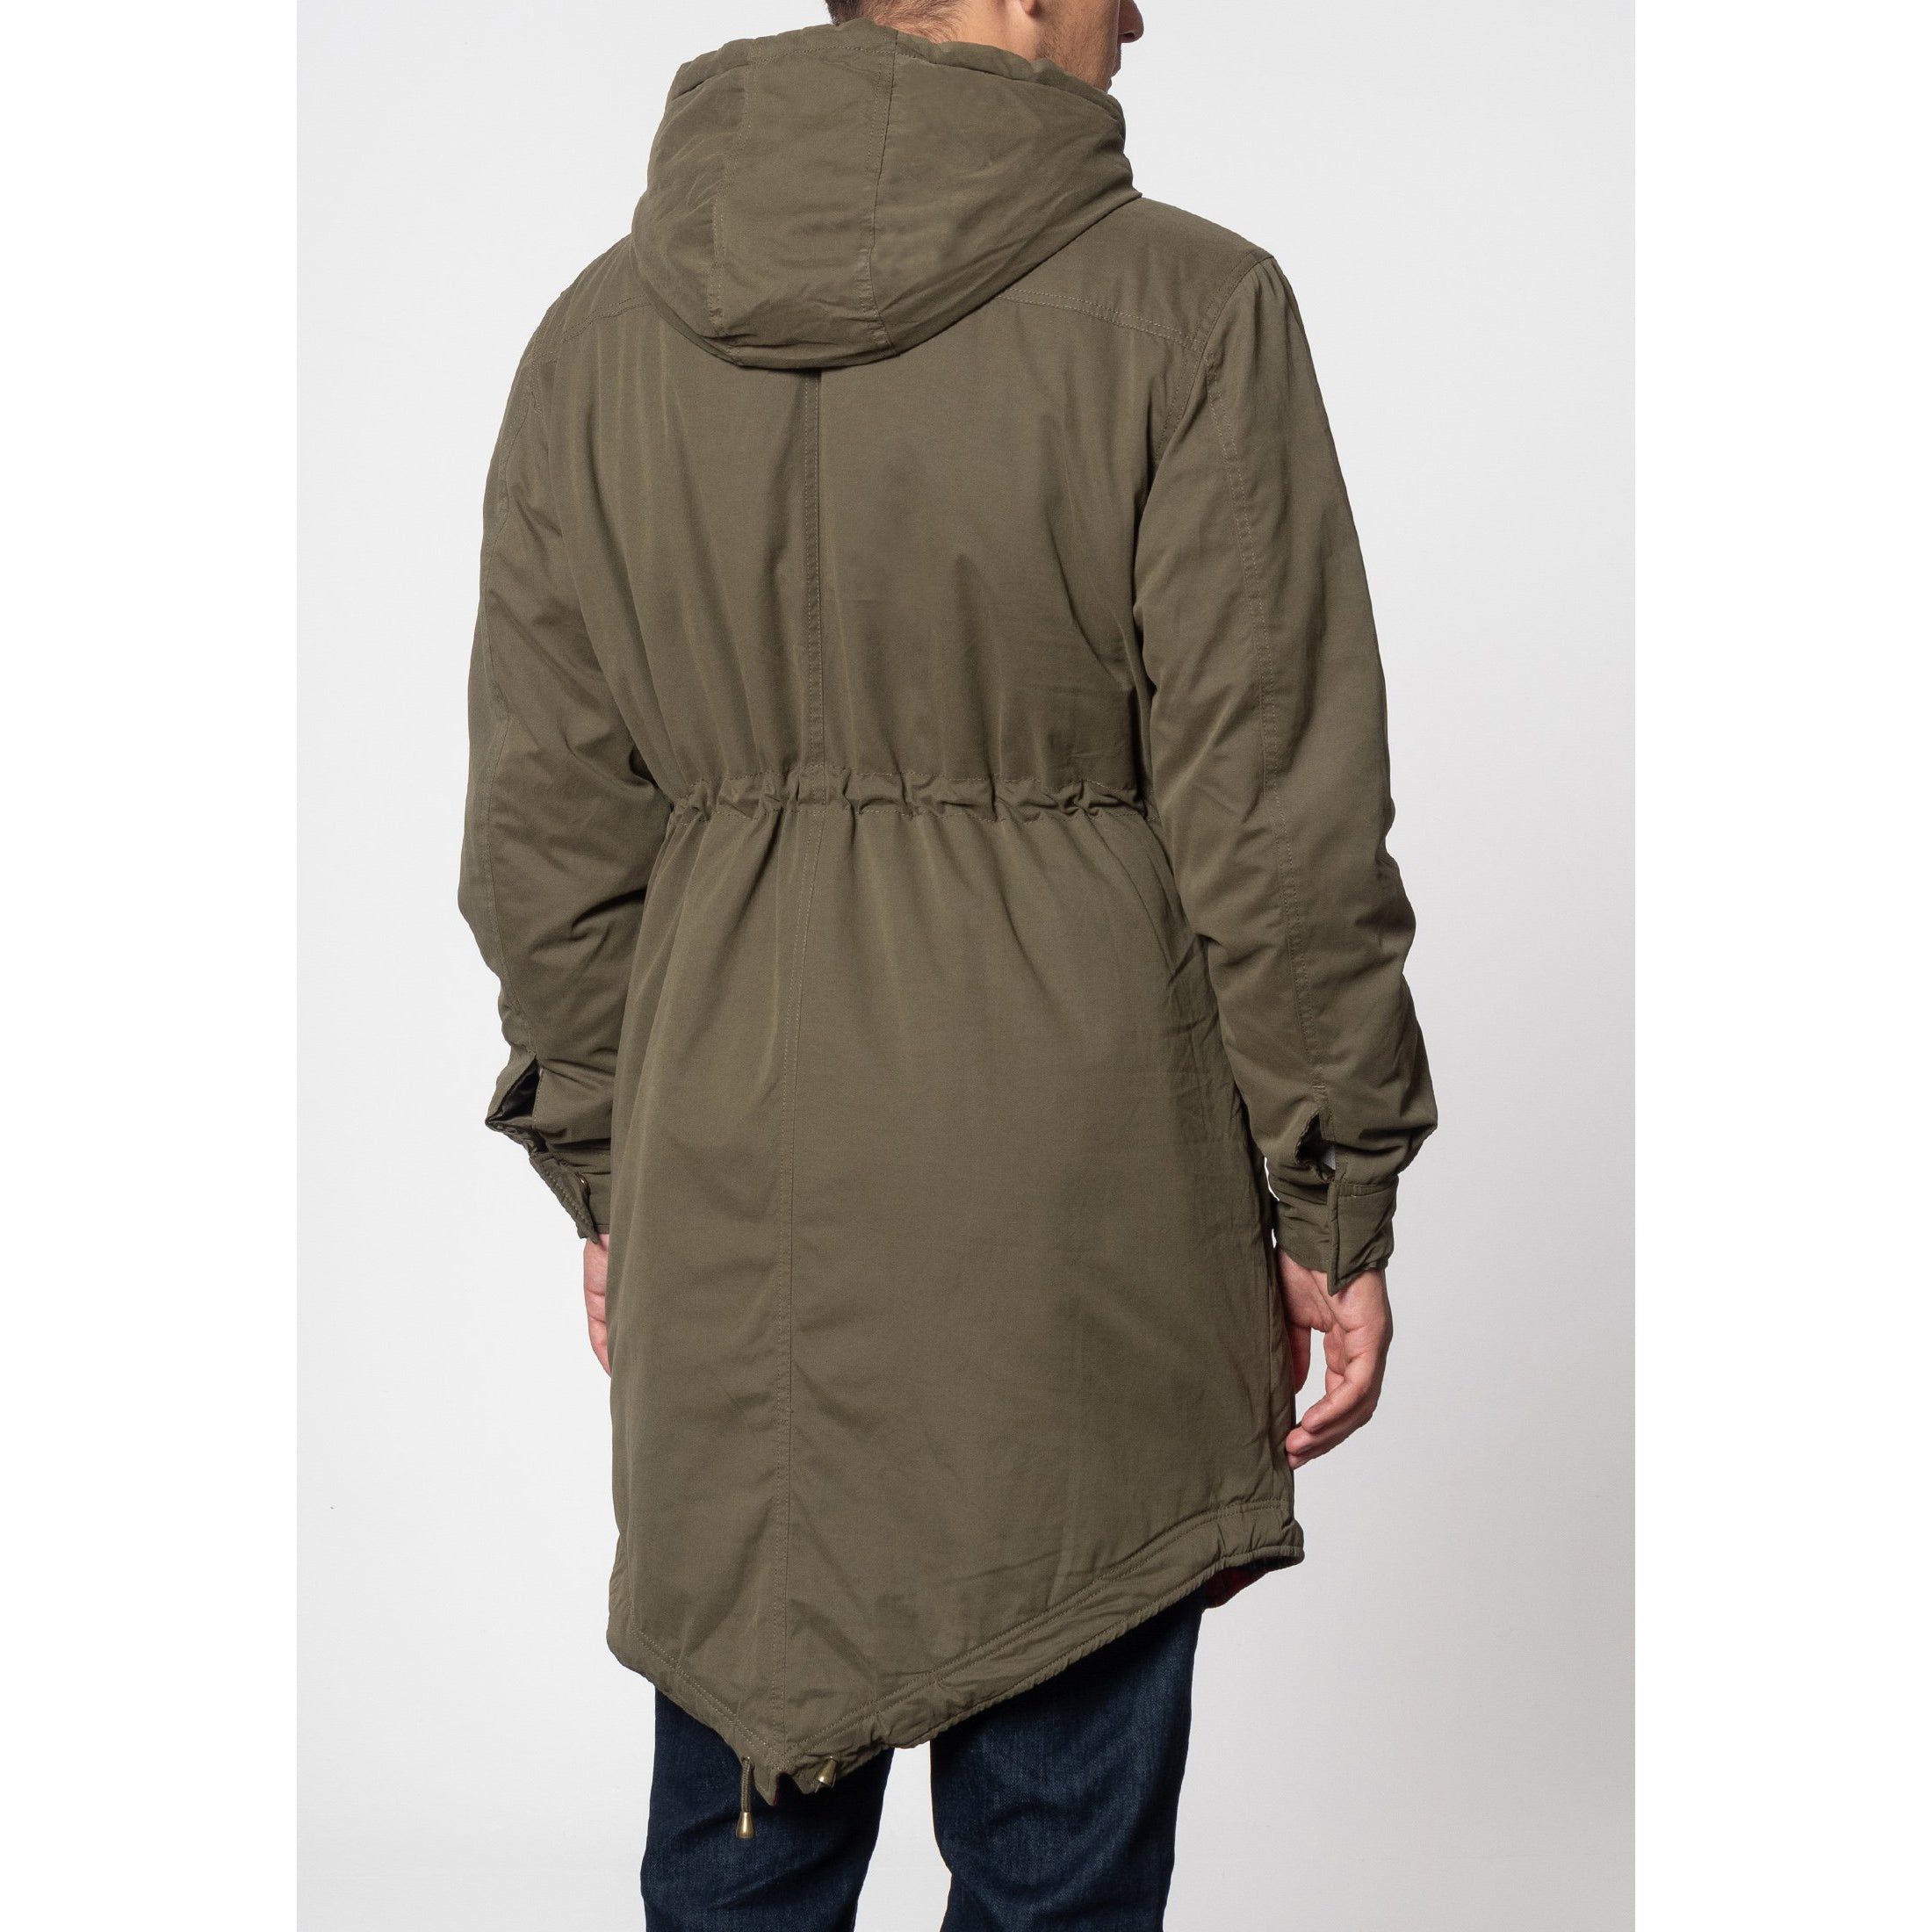 Tobias Fishtail Parka Coat Jacket - Merc